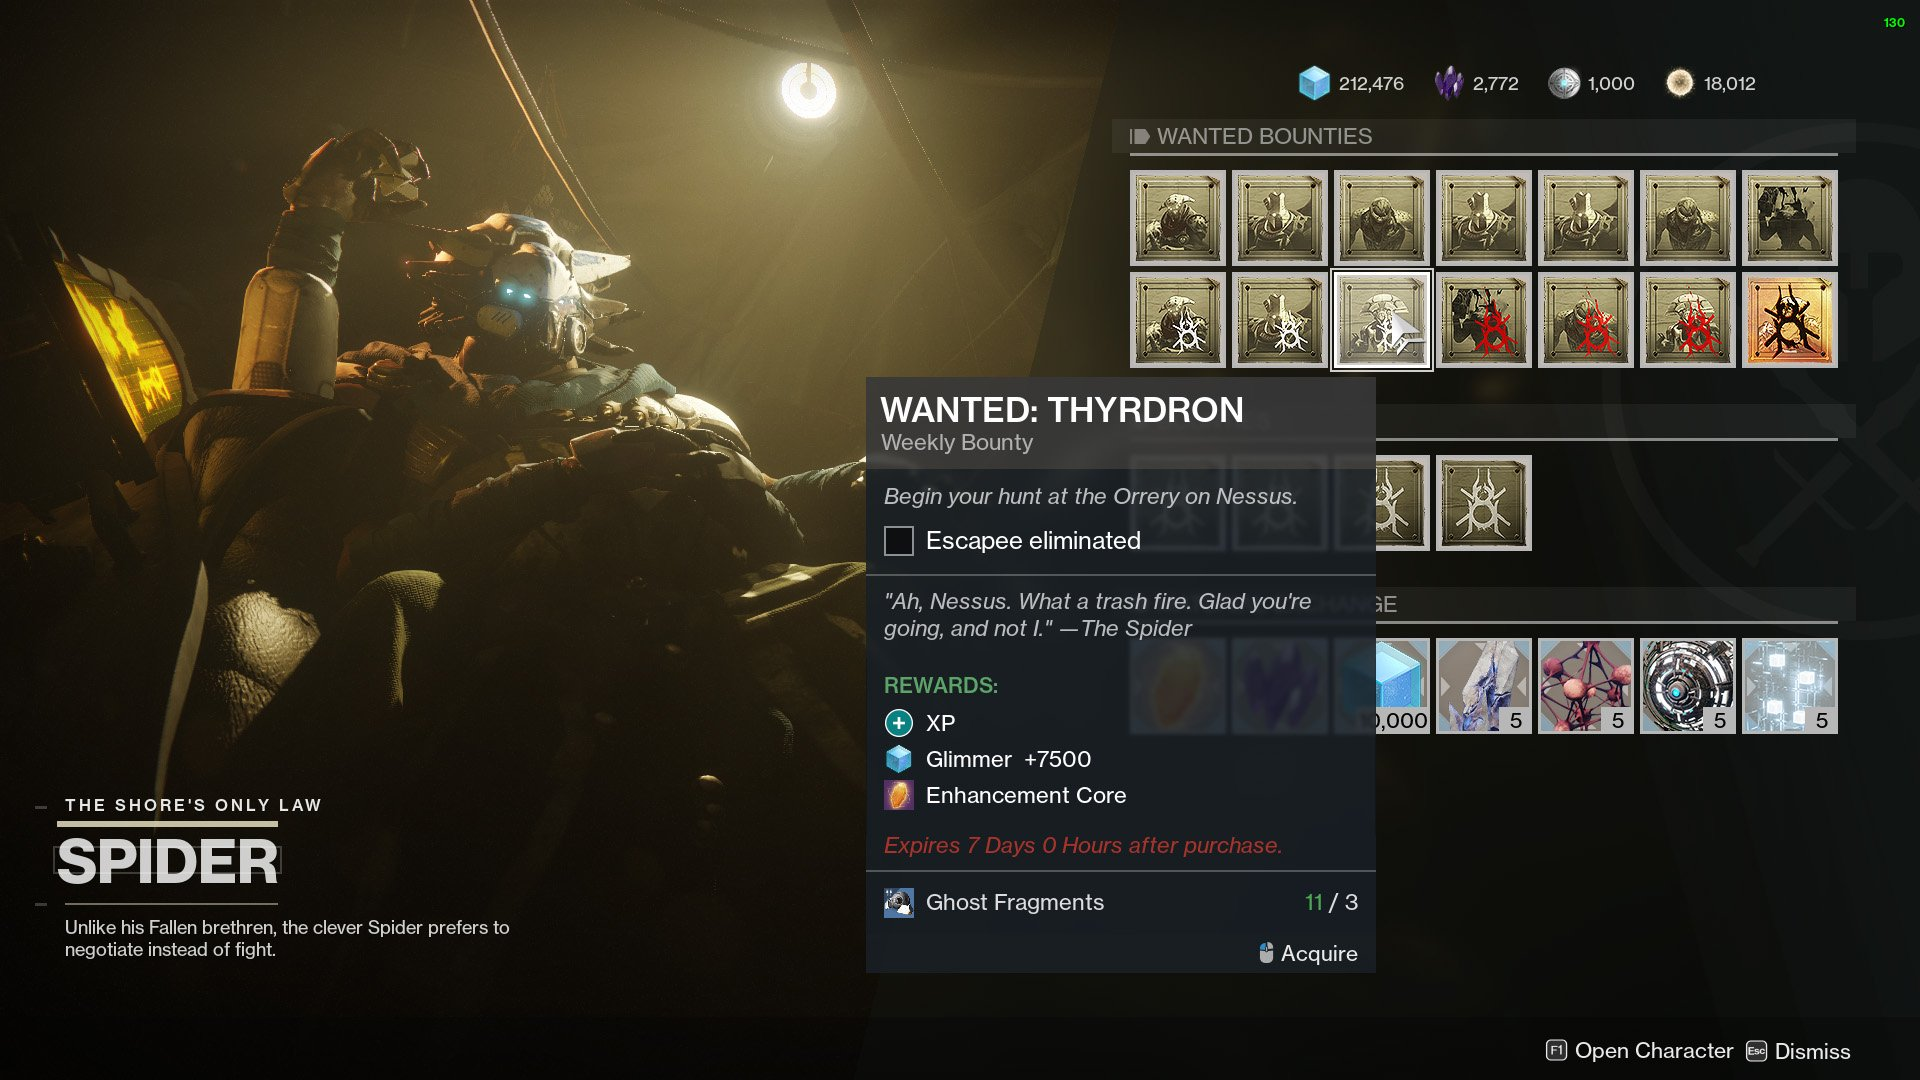 destiny 2 spider bounty wanted thyrdron